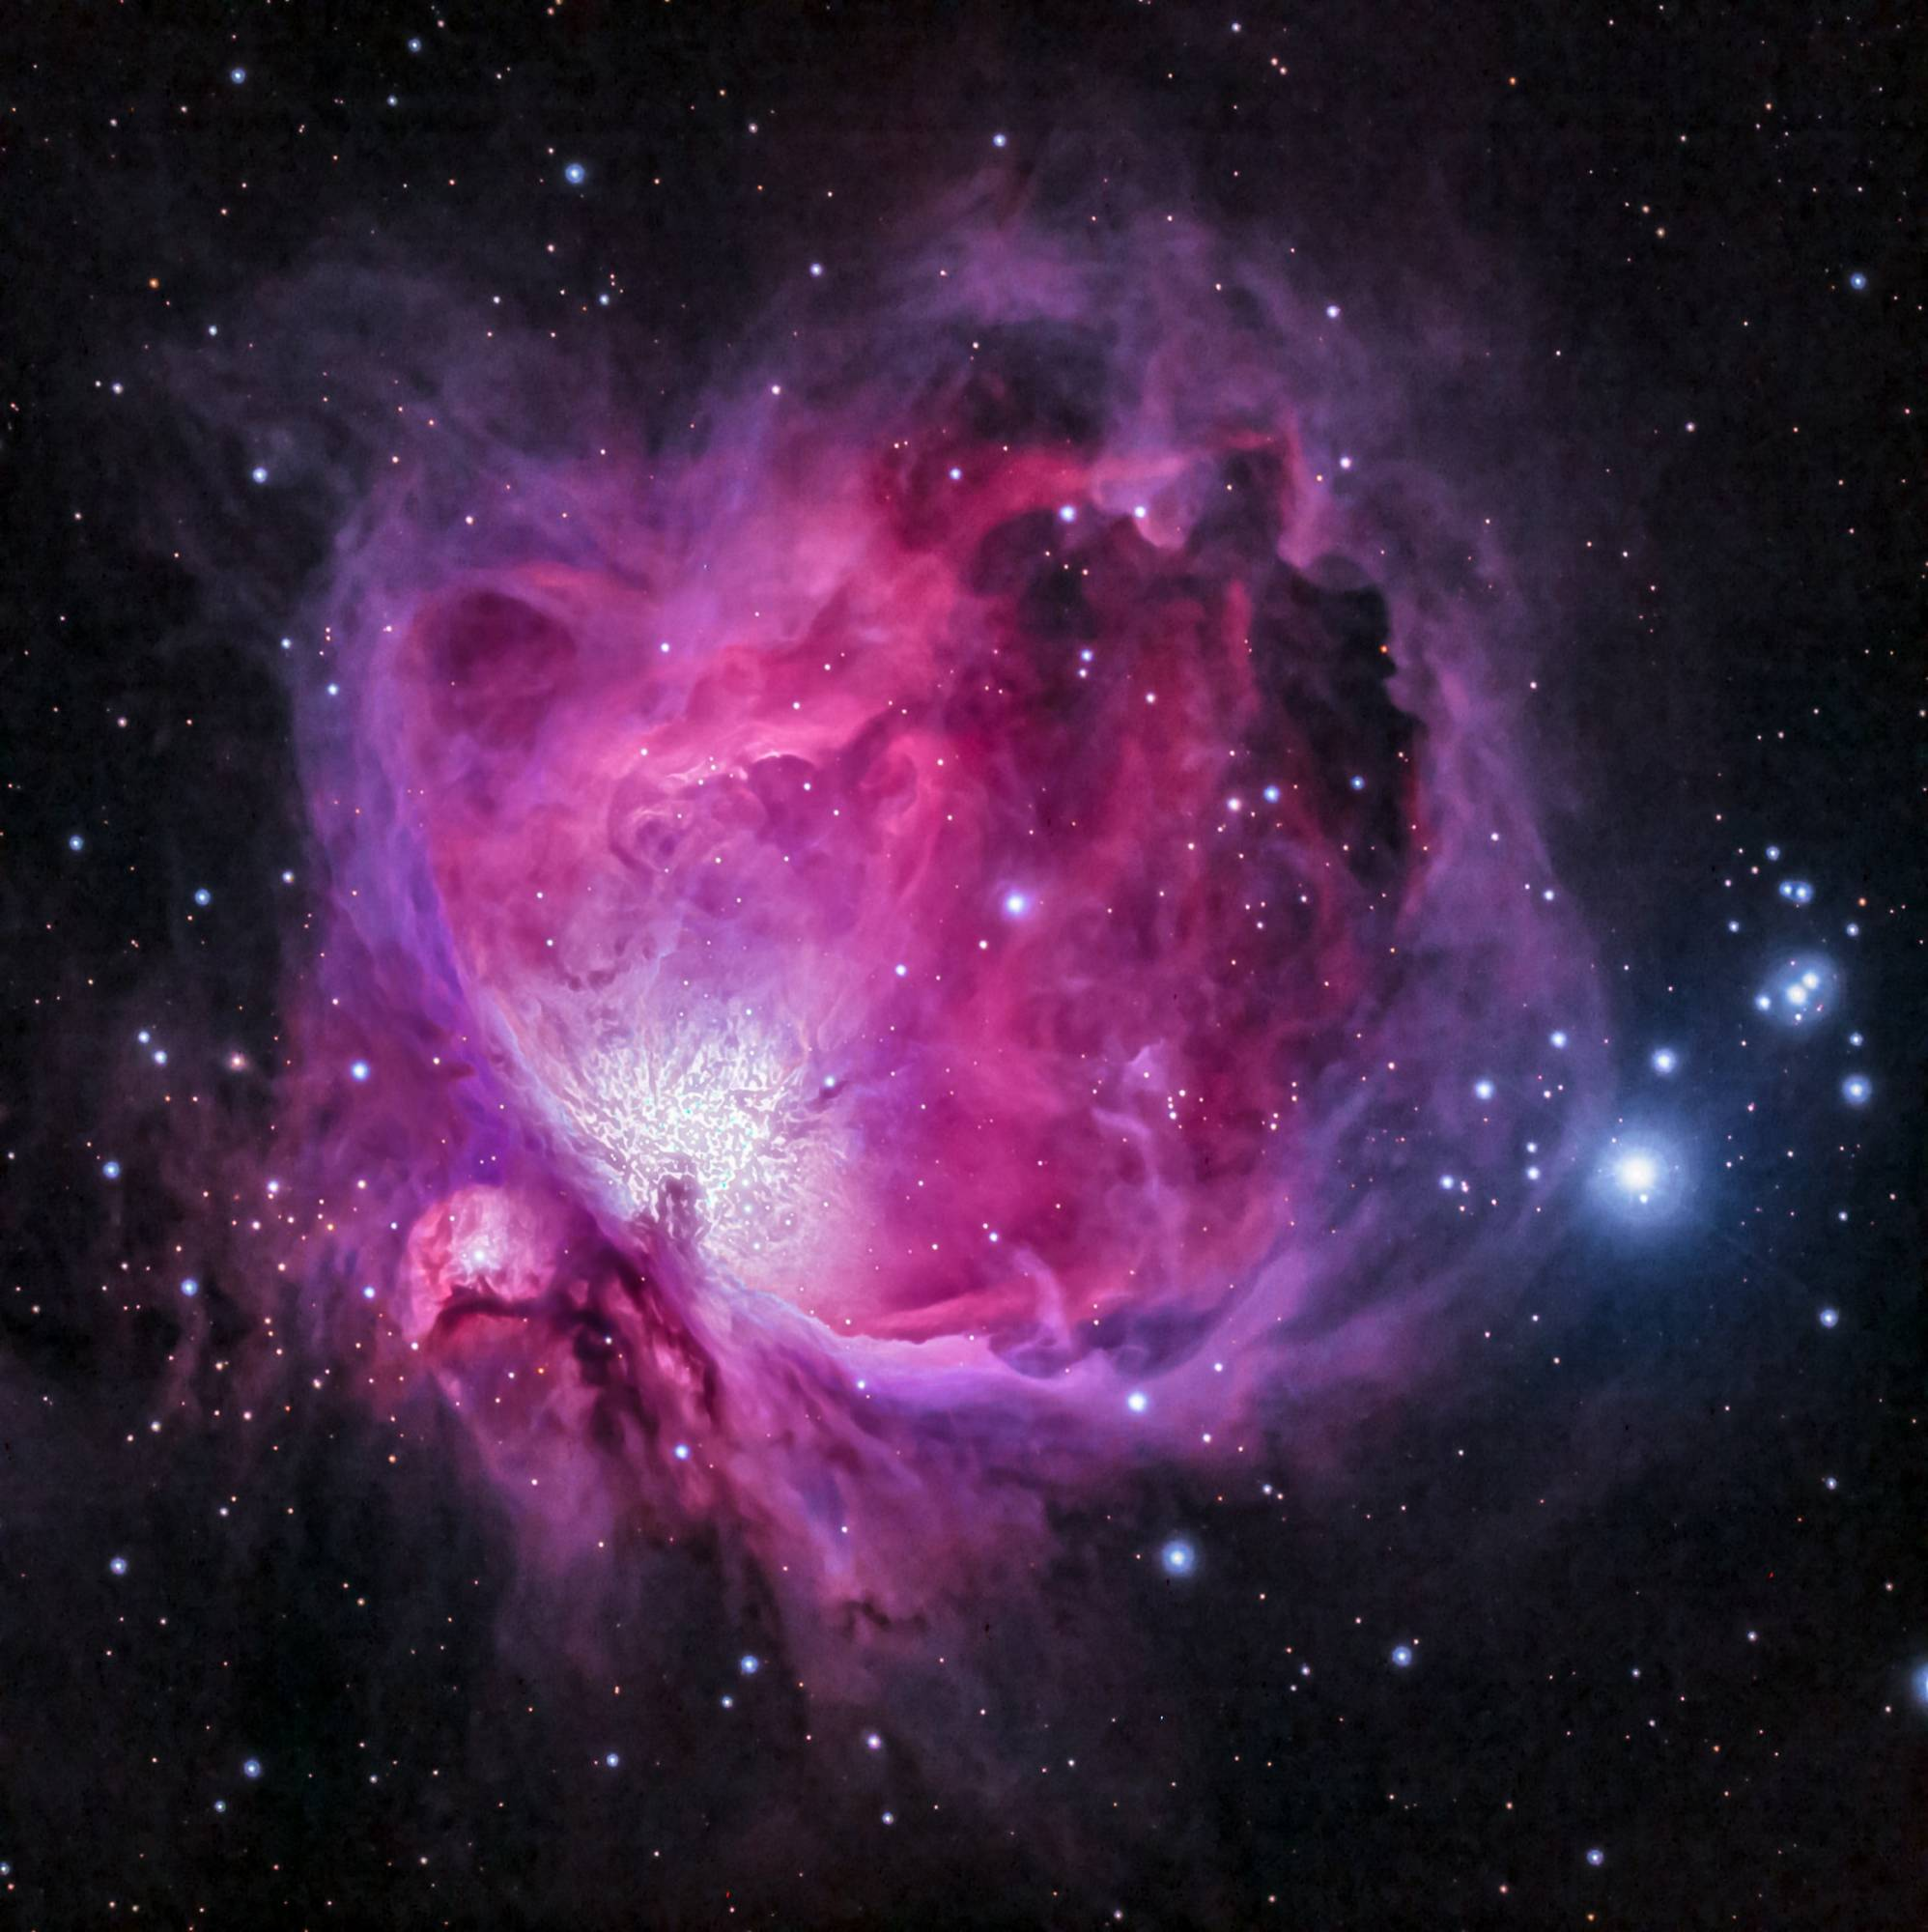 An image of a pink, purple galaxy with bright white stars. Black sky background.